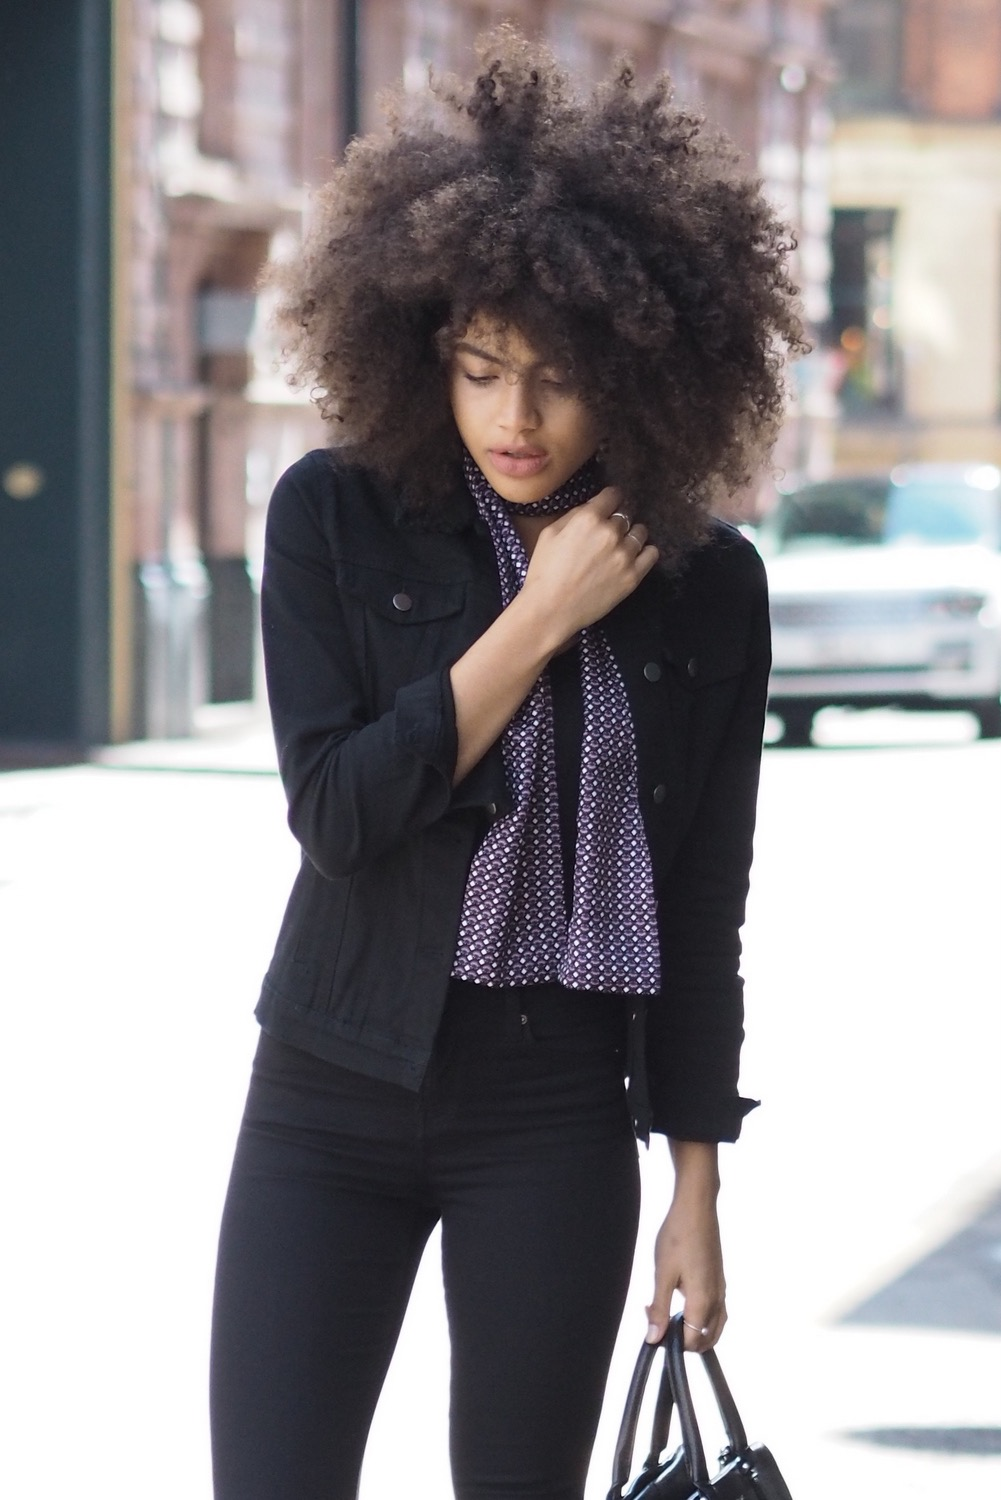 Afro style blogger